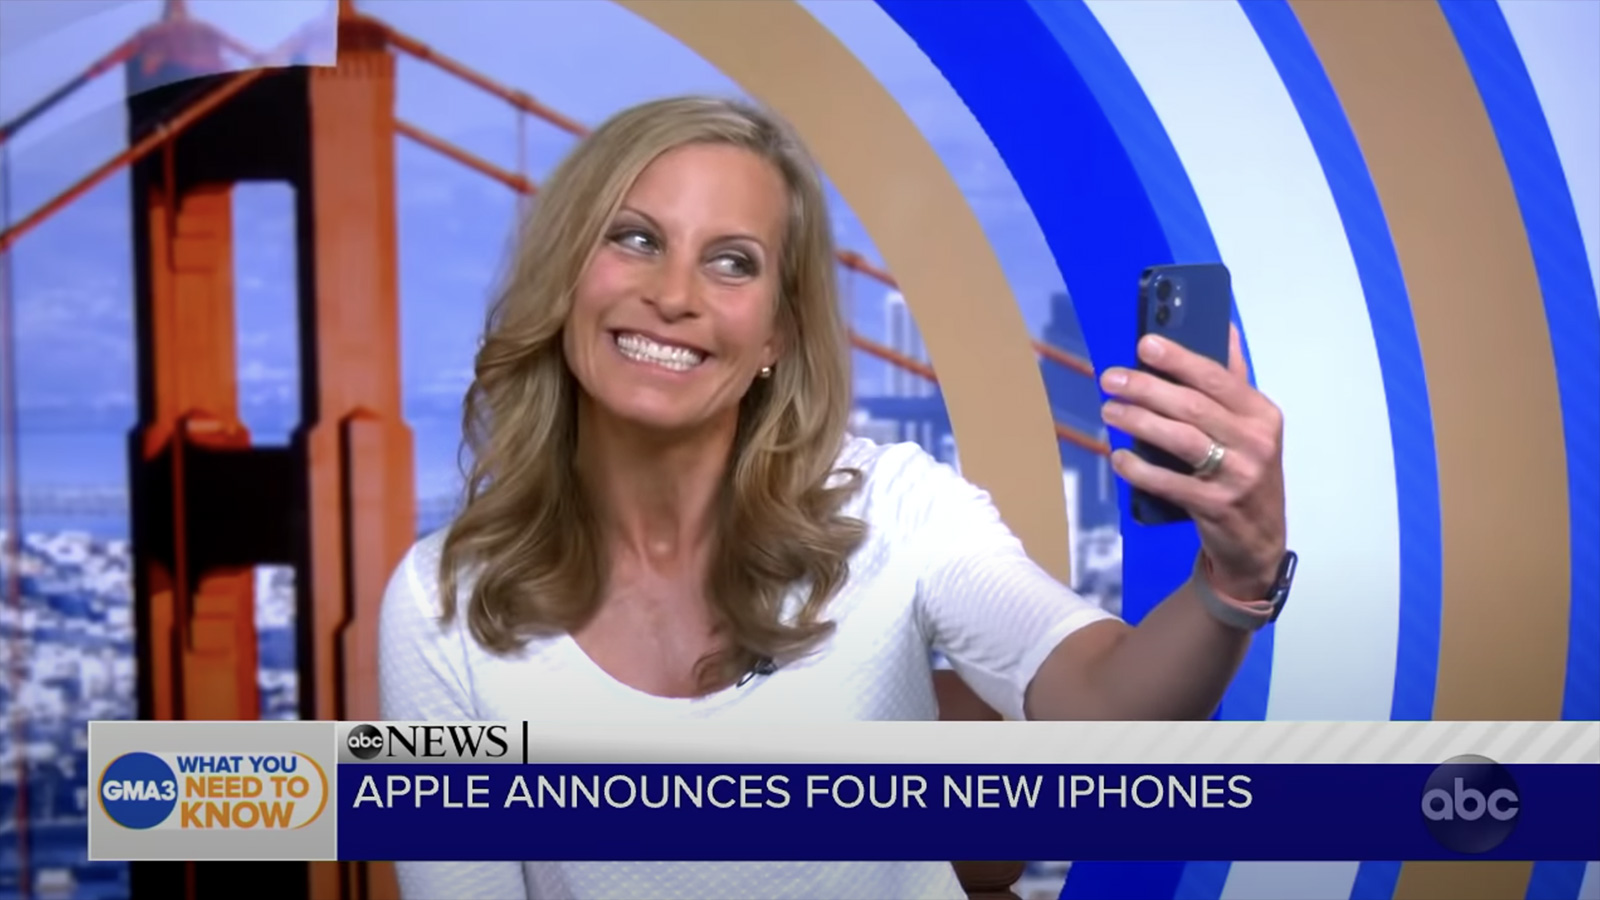 iPhone 12 makes an appearance on ABC's Good Morning American.